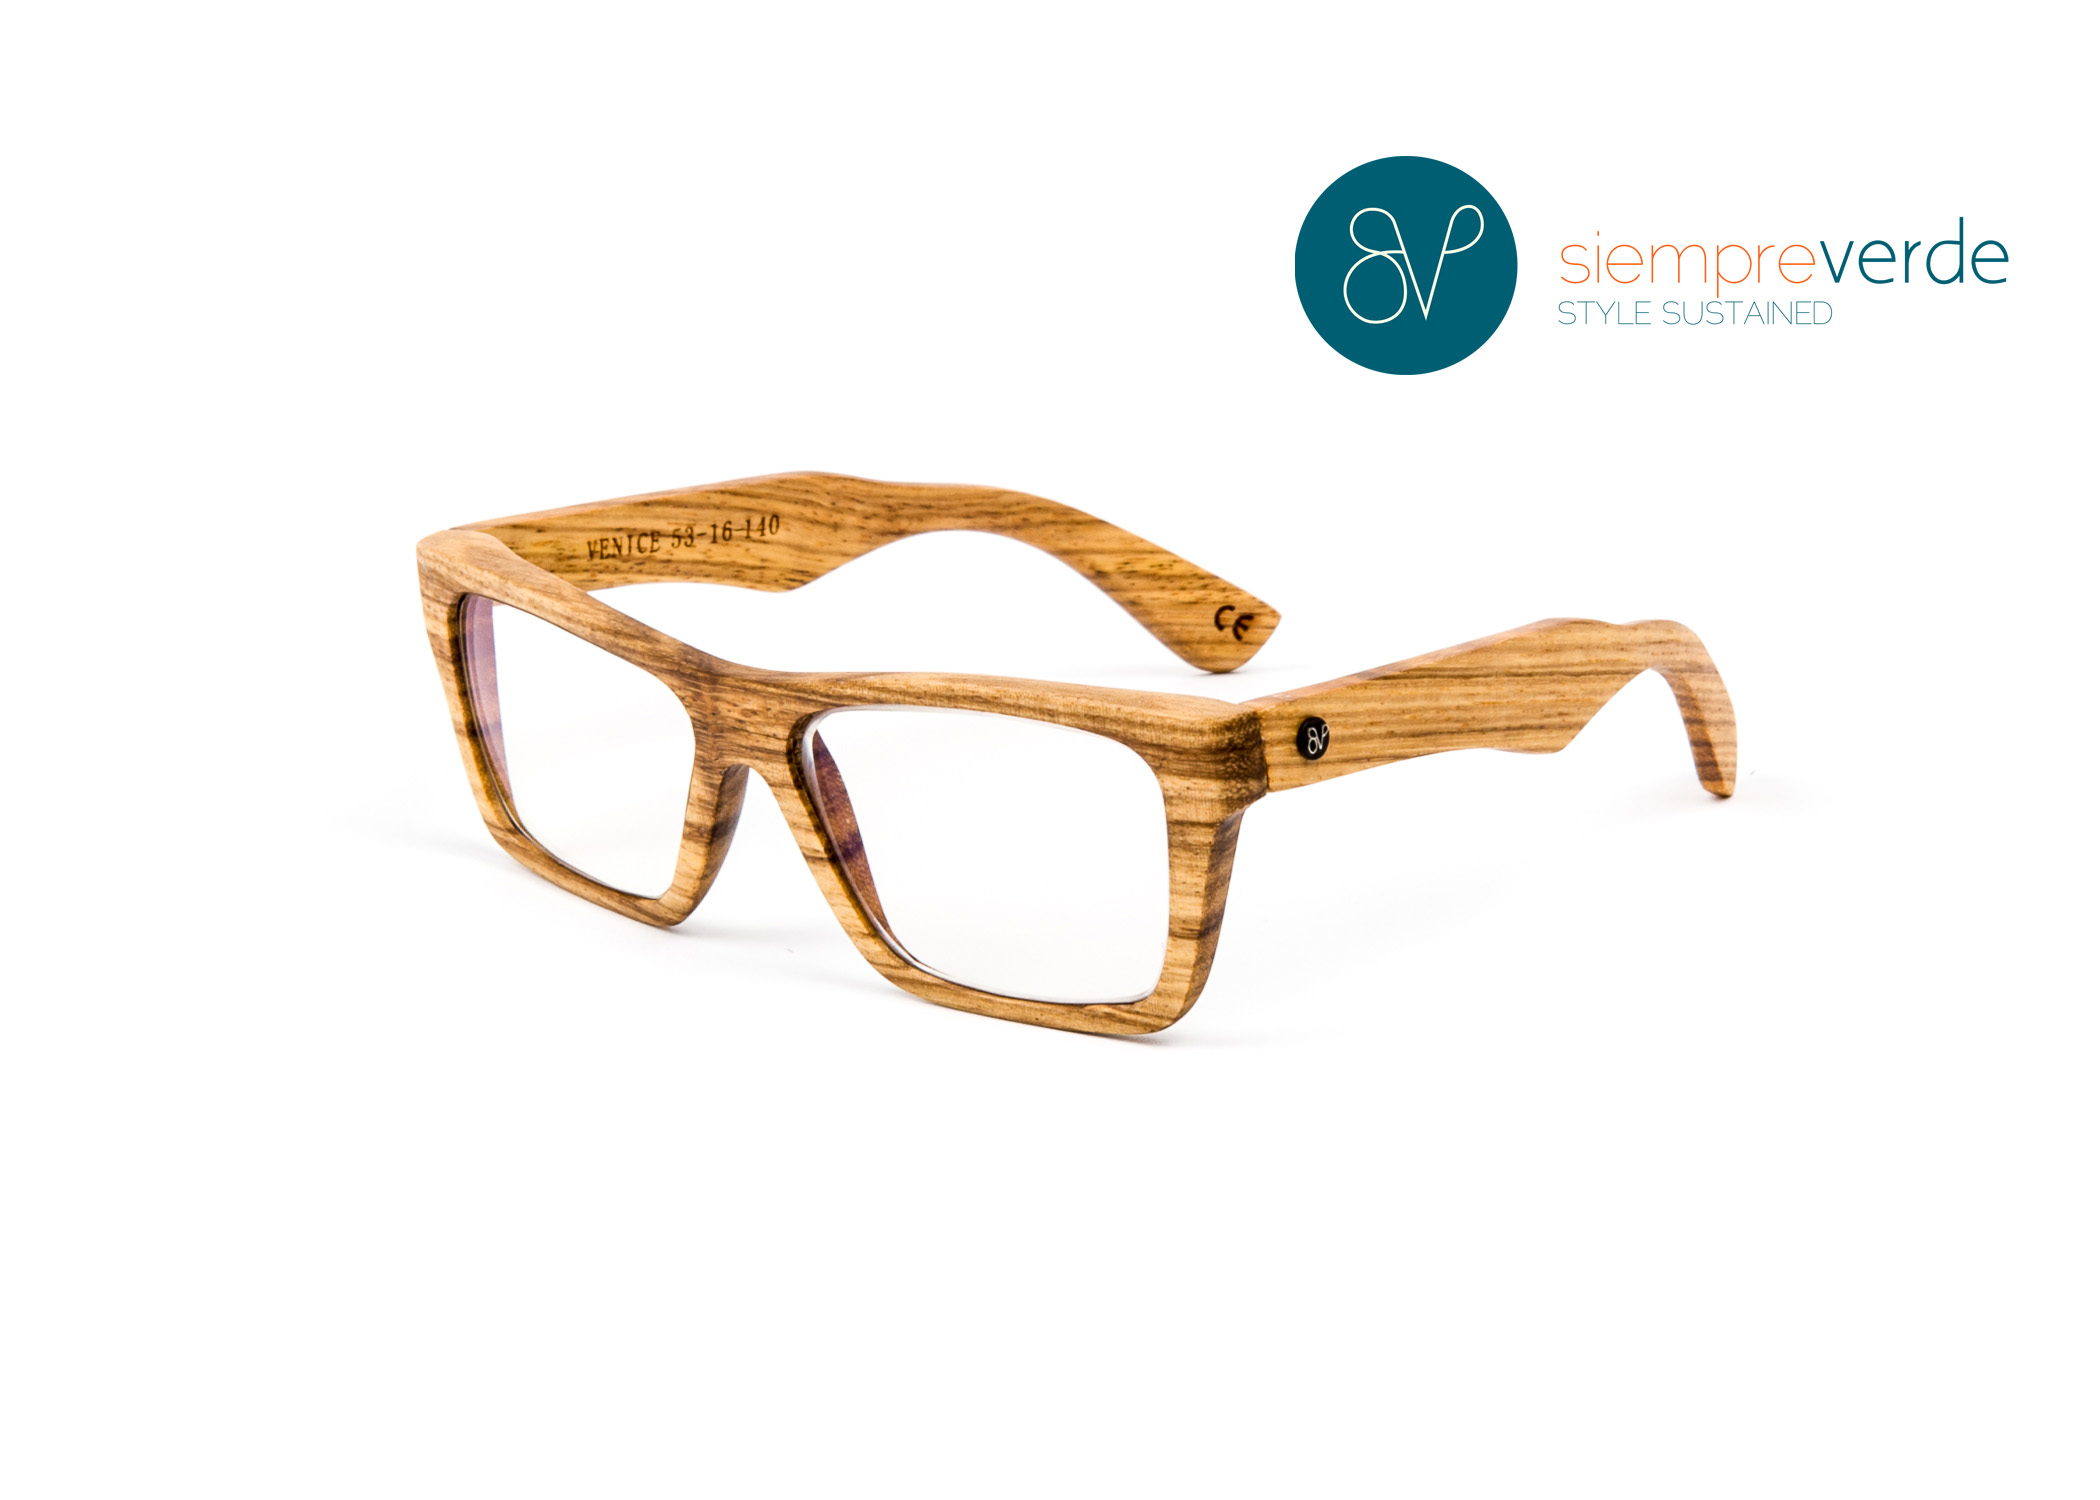 Siempre Verde Launches the Madera Collection: Wood Eyewear ...